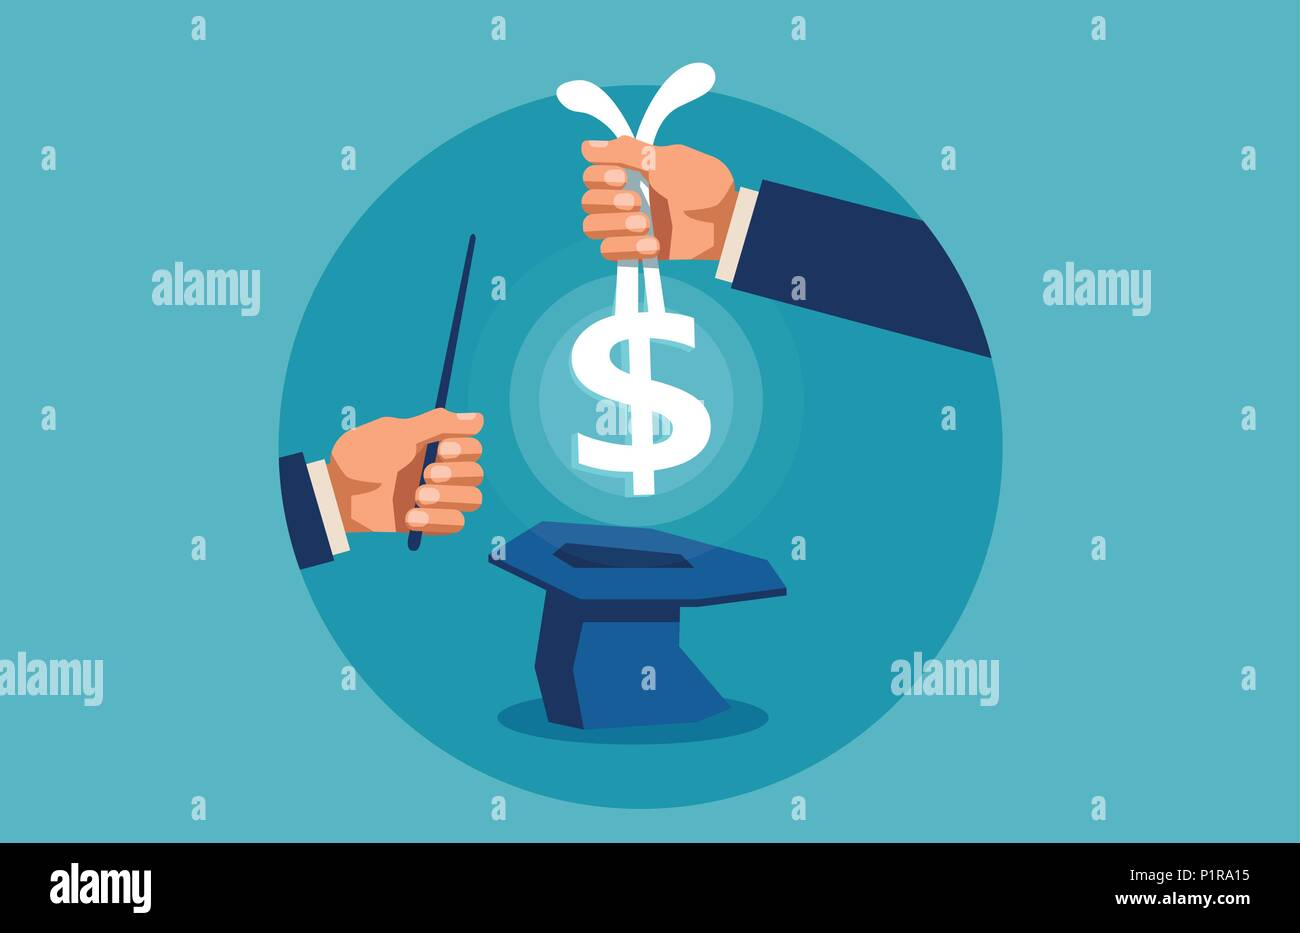 Concept of fast money. and financial manipulation. Hand pulls money out of a hat, with a magic wand - Stock Image